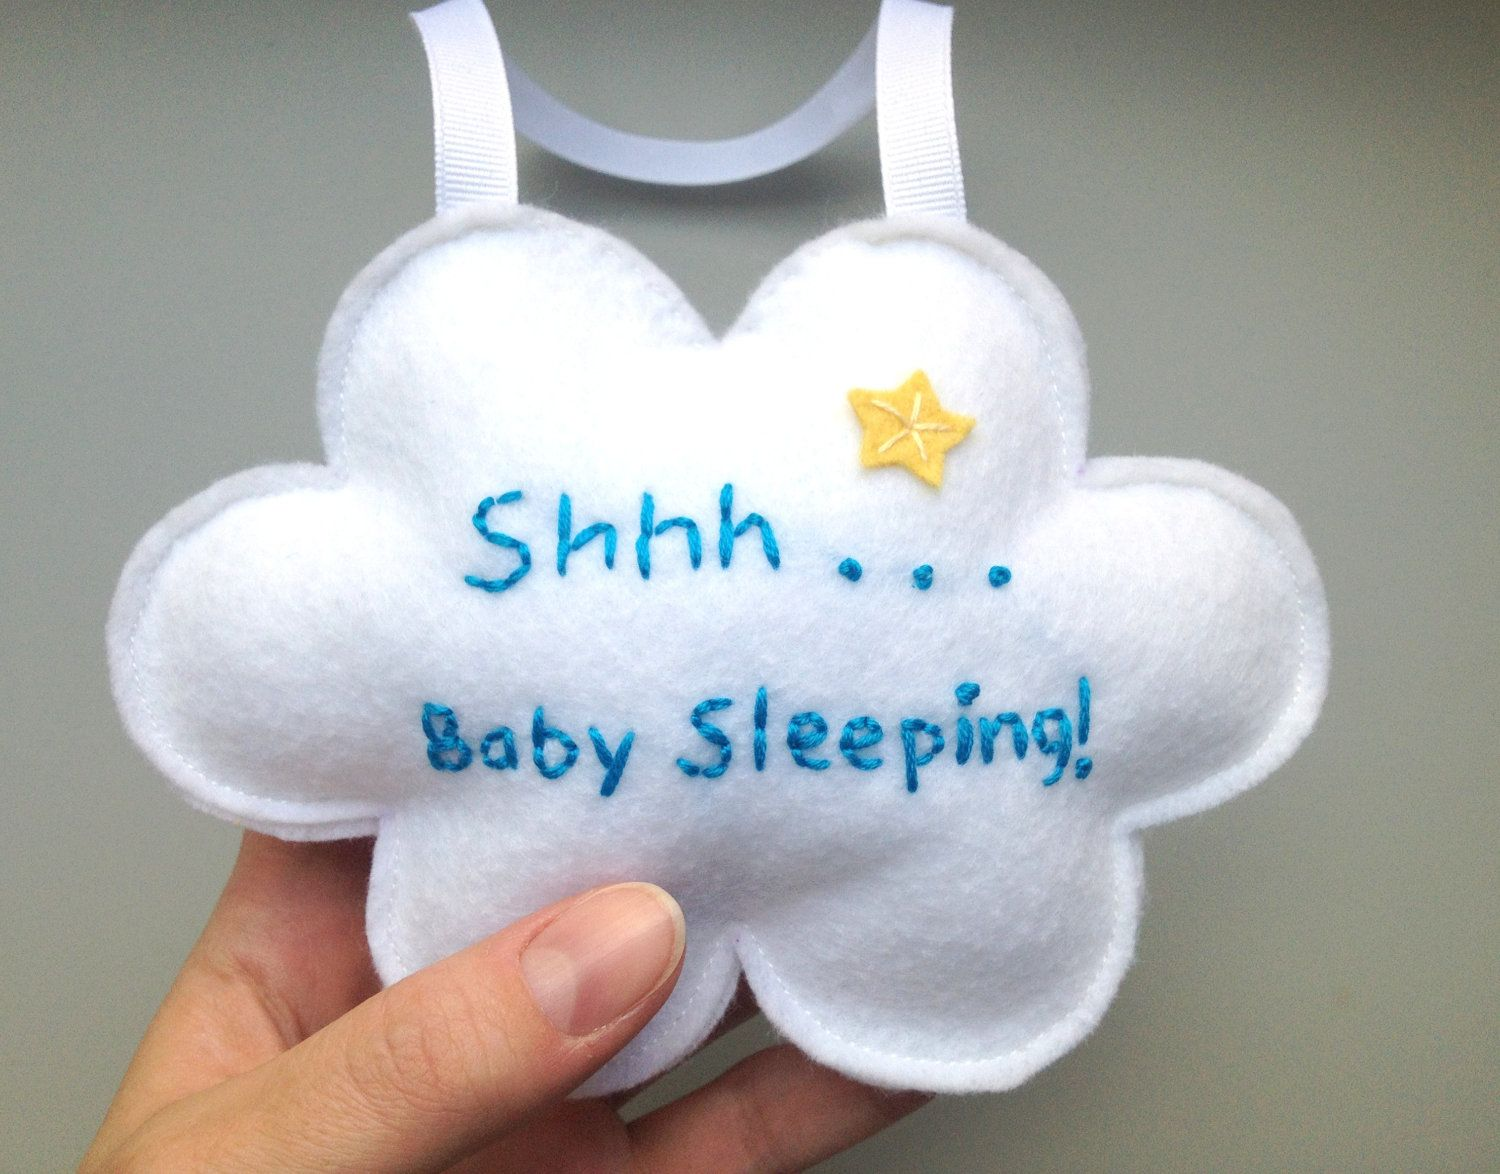 Awesome Plush Baby Sleeping Sign, Cloud Baby Room Decoration, Baby Door Hangers, Nursery  Decor. $18.00, Via Etsy.